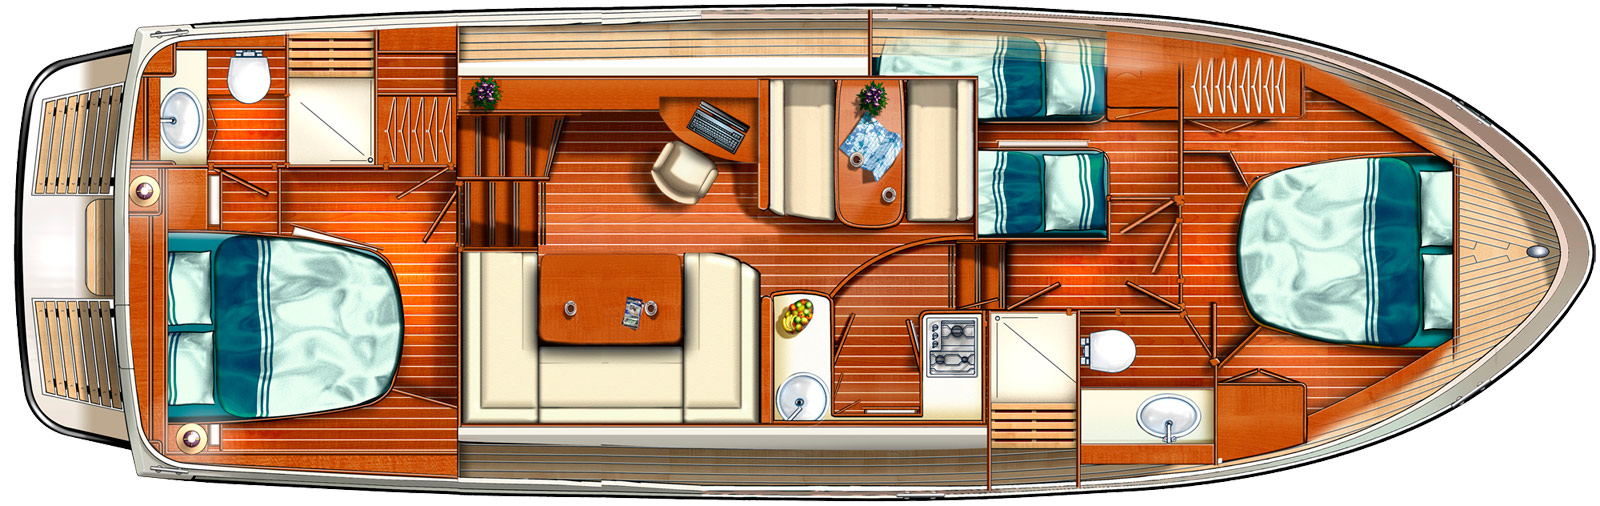 Pre owned Linssen Grand Sturdy 43.9 AC layout